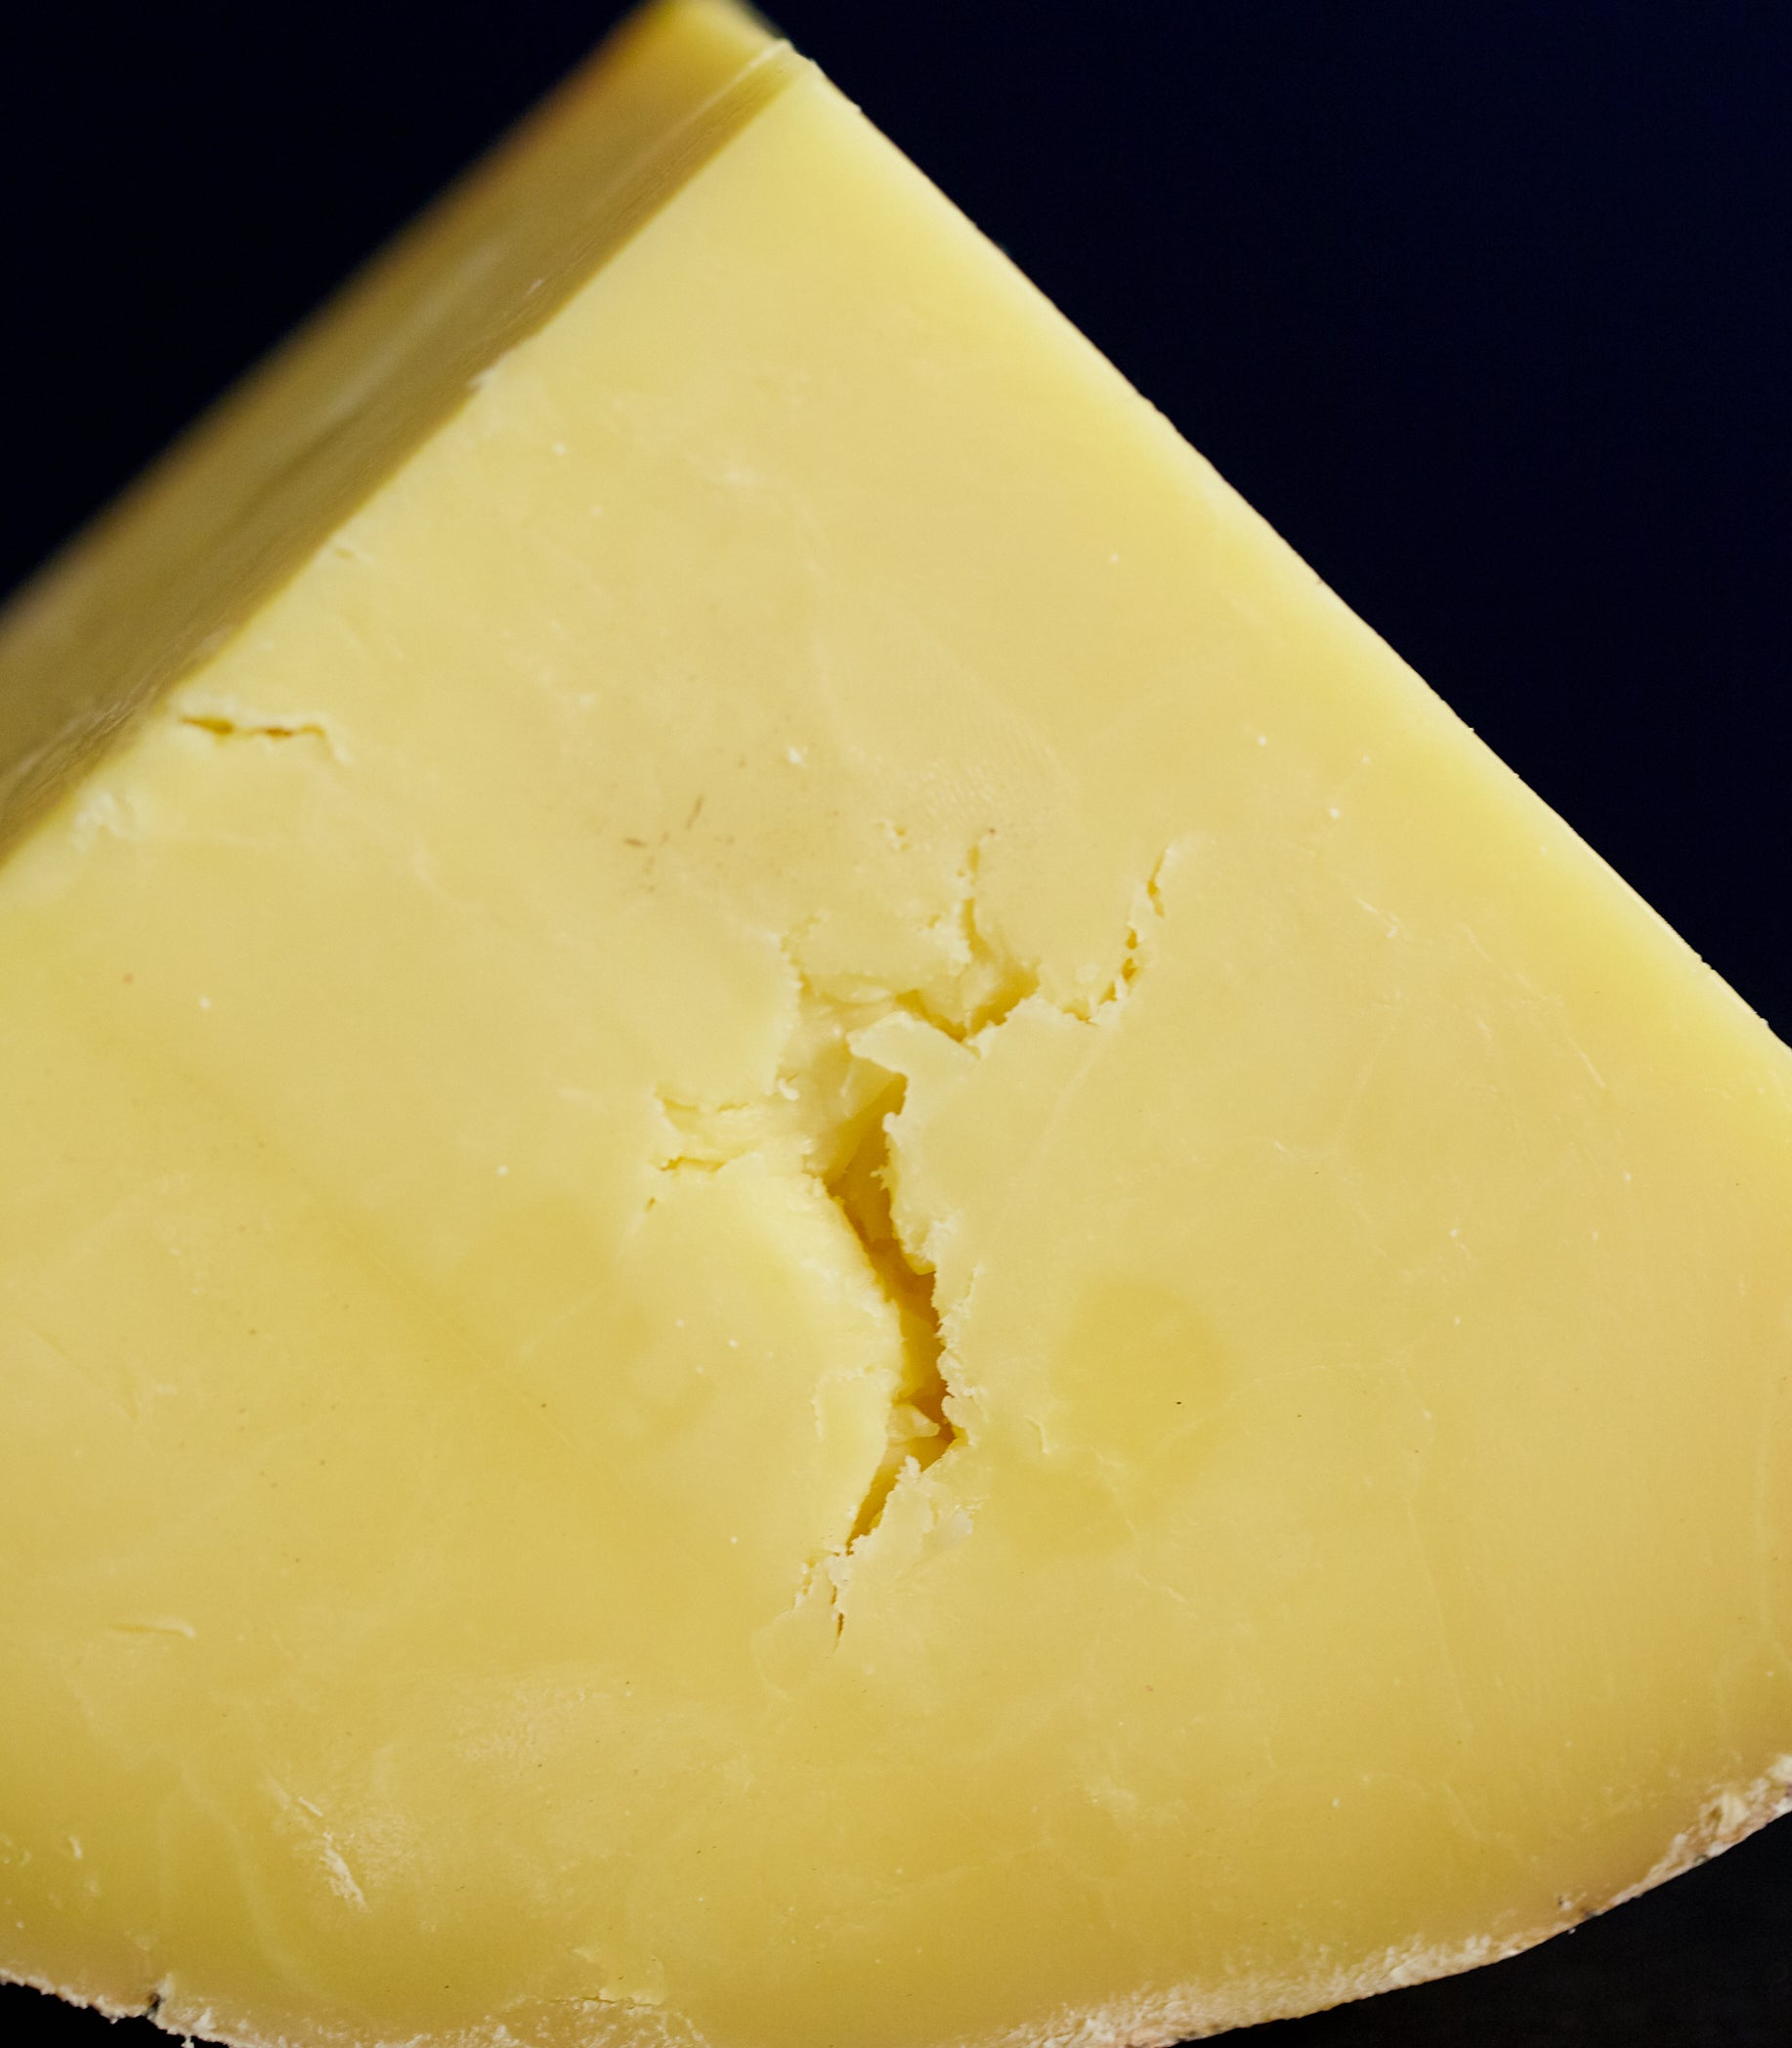 Close up of a large cut of clothbound Hafod Cheddar cheese showing the texture of the golden paste